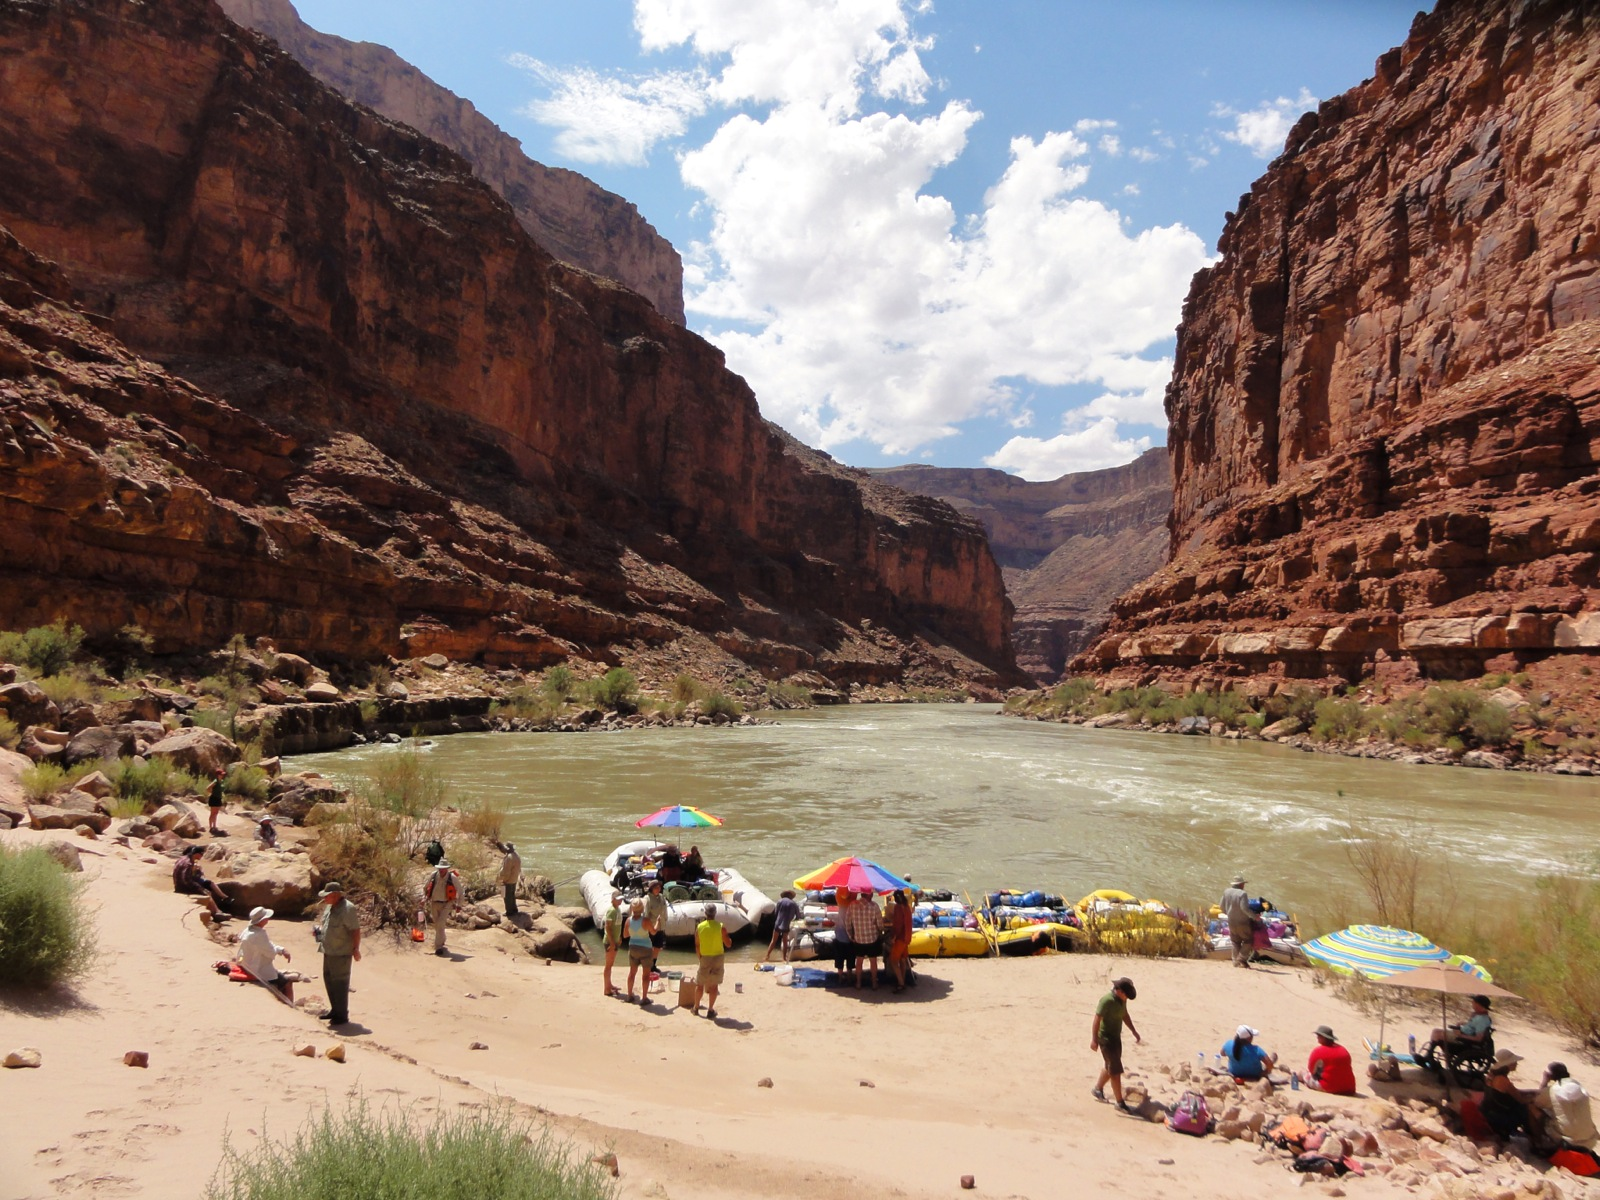 The group takes a lunch break on a sand beach with dramatic views of the canyon walls behind them.